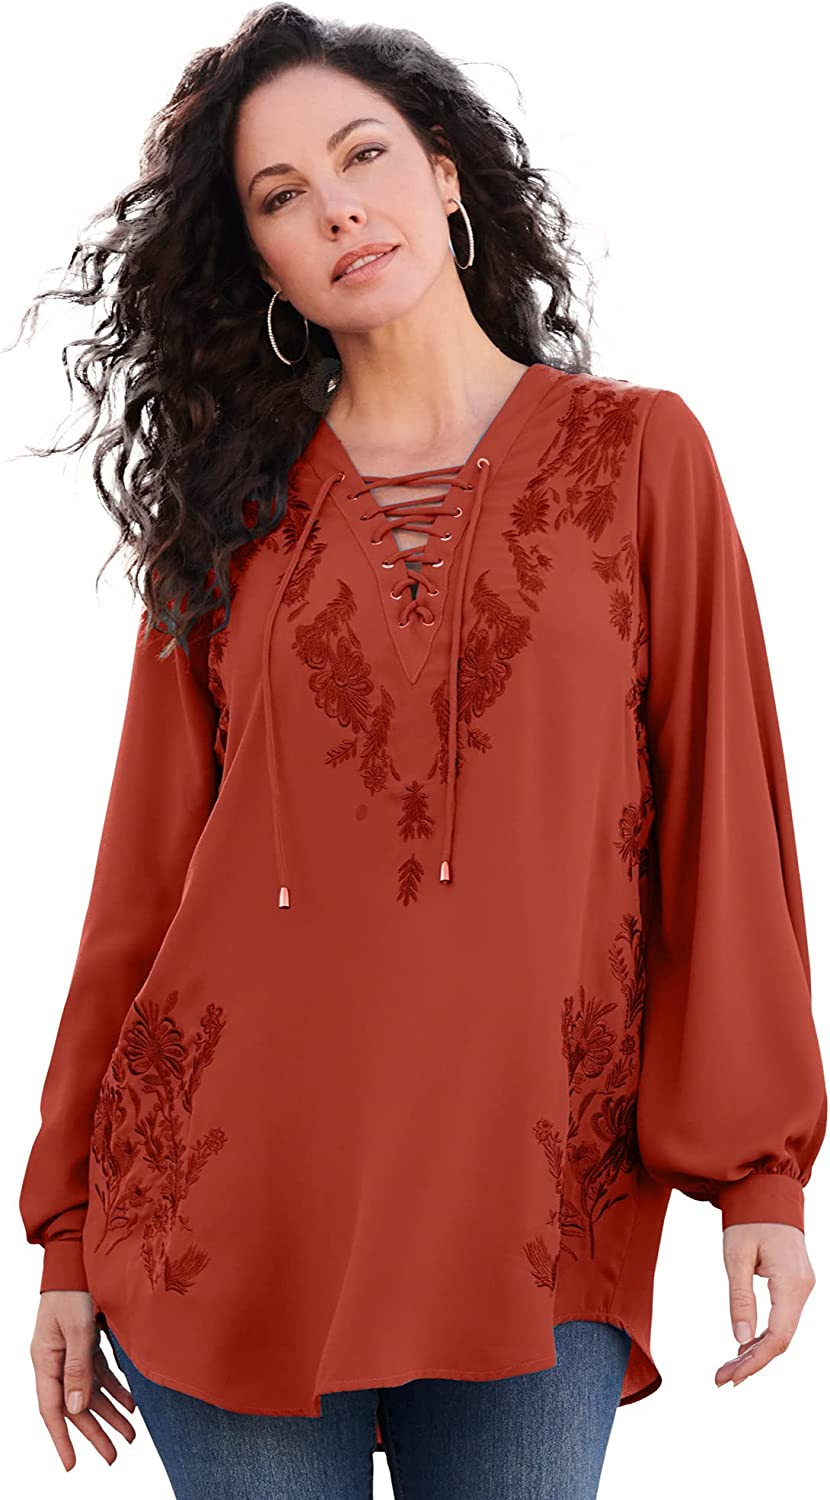 Roamans Women's Plus Size Embroidered Lace-Up Tunic Long Shirt Blouse